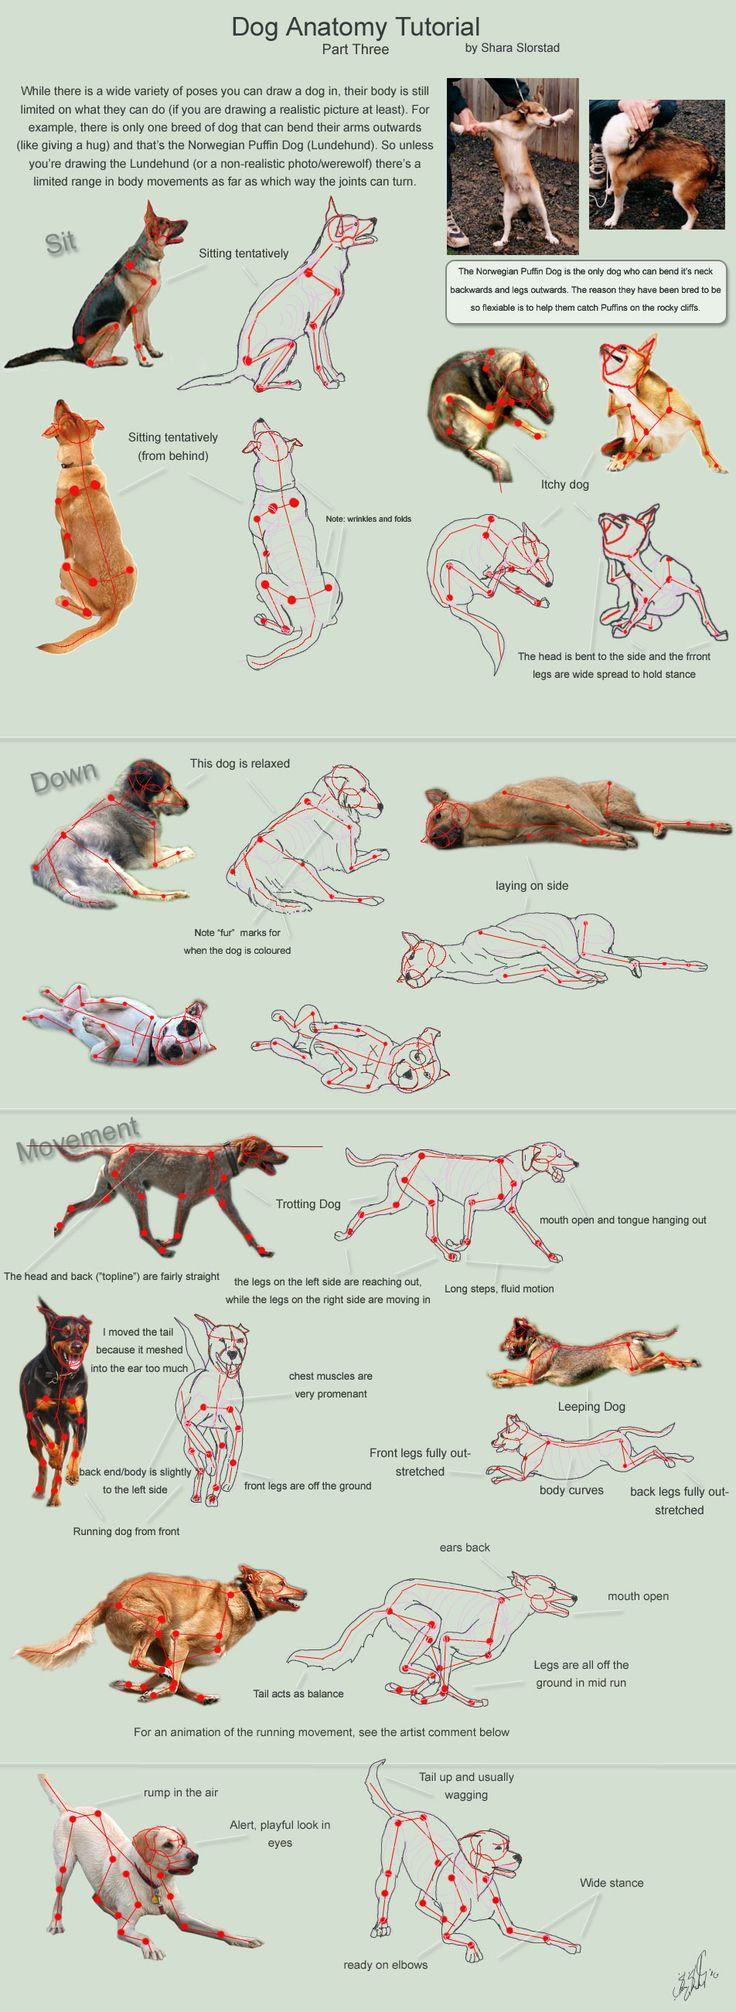 Dog Anatomy Tutorial 3 by SleepingDeadGirl.deviantart.com on @deviantART